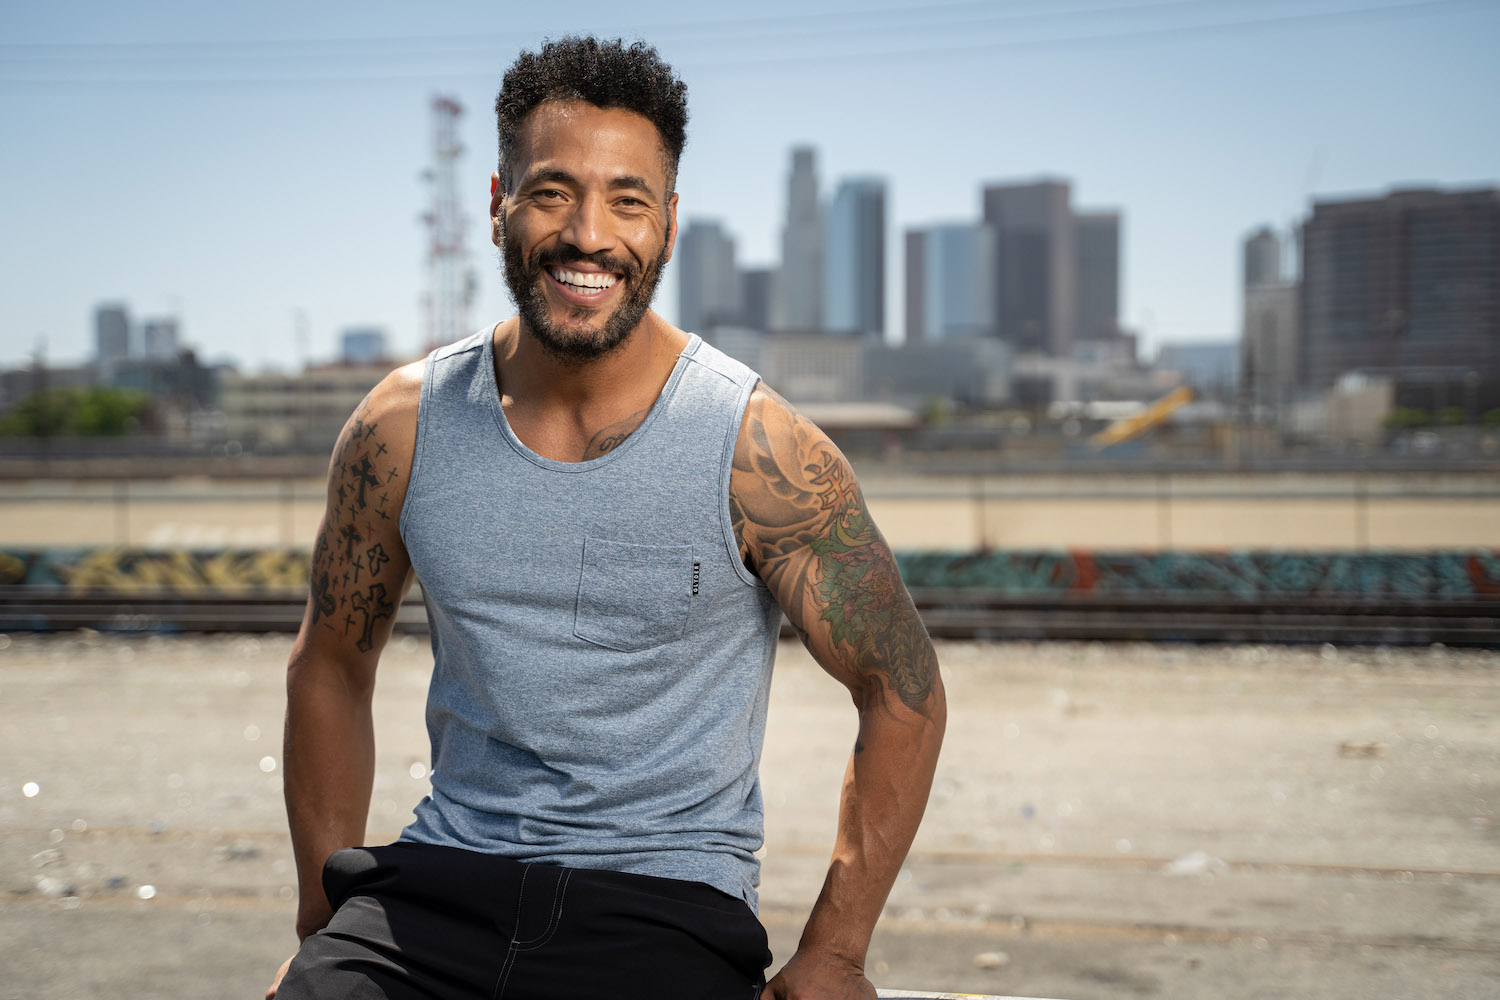 Lifestyle-On-Location-Model-Onmodel-Damion-Lloyd-Photography-Commercial-Product-Apparel-Clothing-Los-Angeles-Orange-County-male-man-GLYDER-sportswear-outdoor-city-blue-tank-menswear-smile-downtown